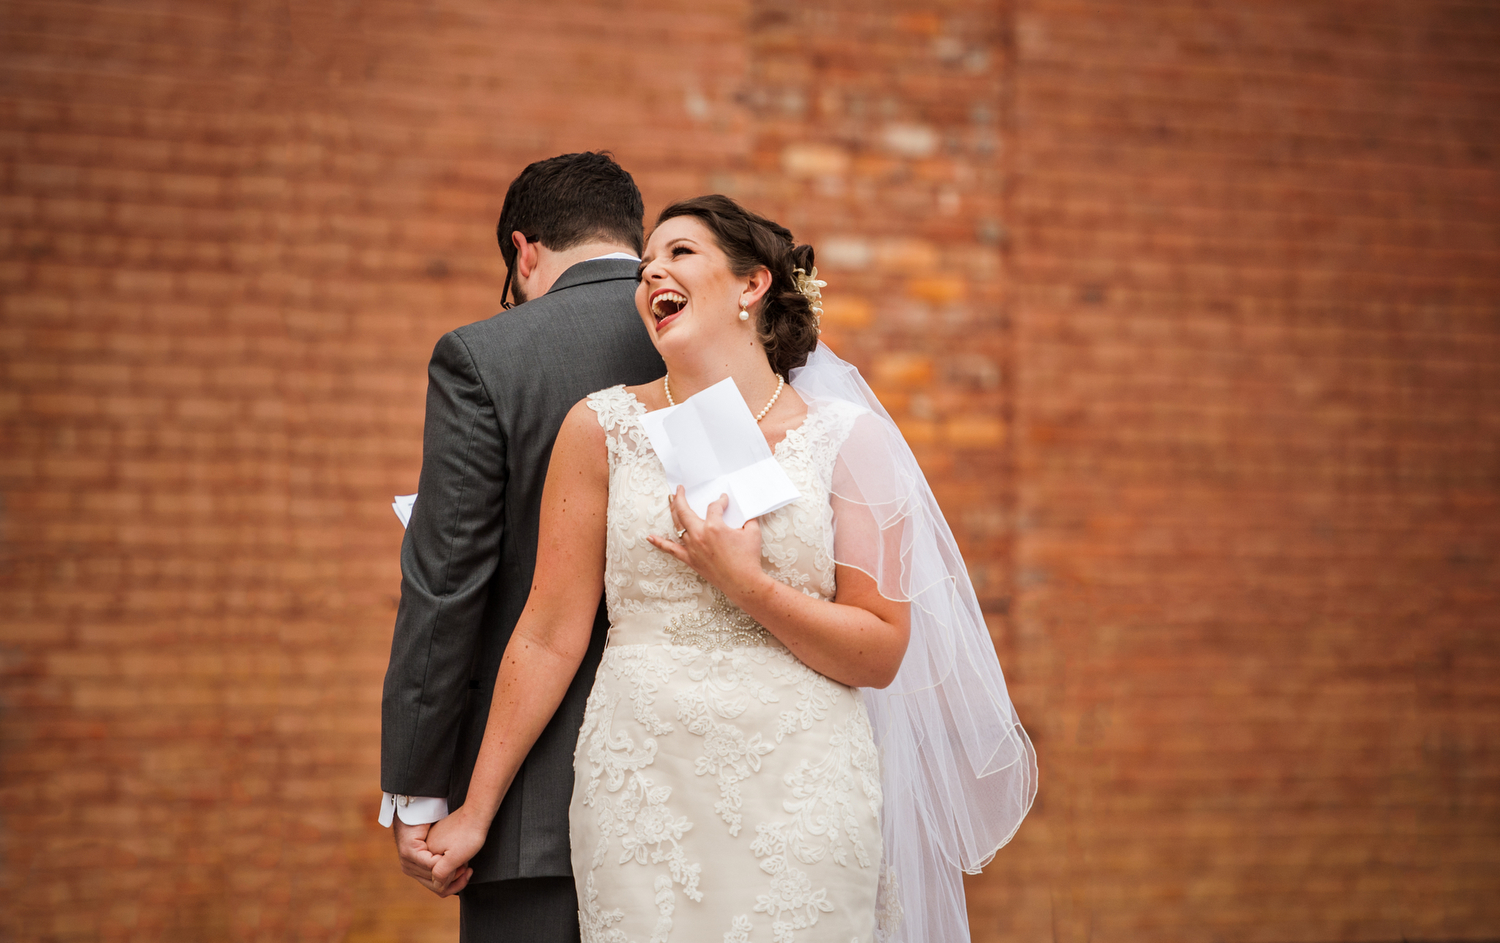 Gallery-moments-nix-weddings-02A.jpg